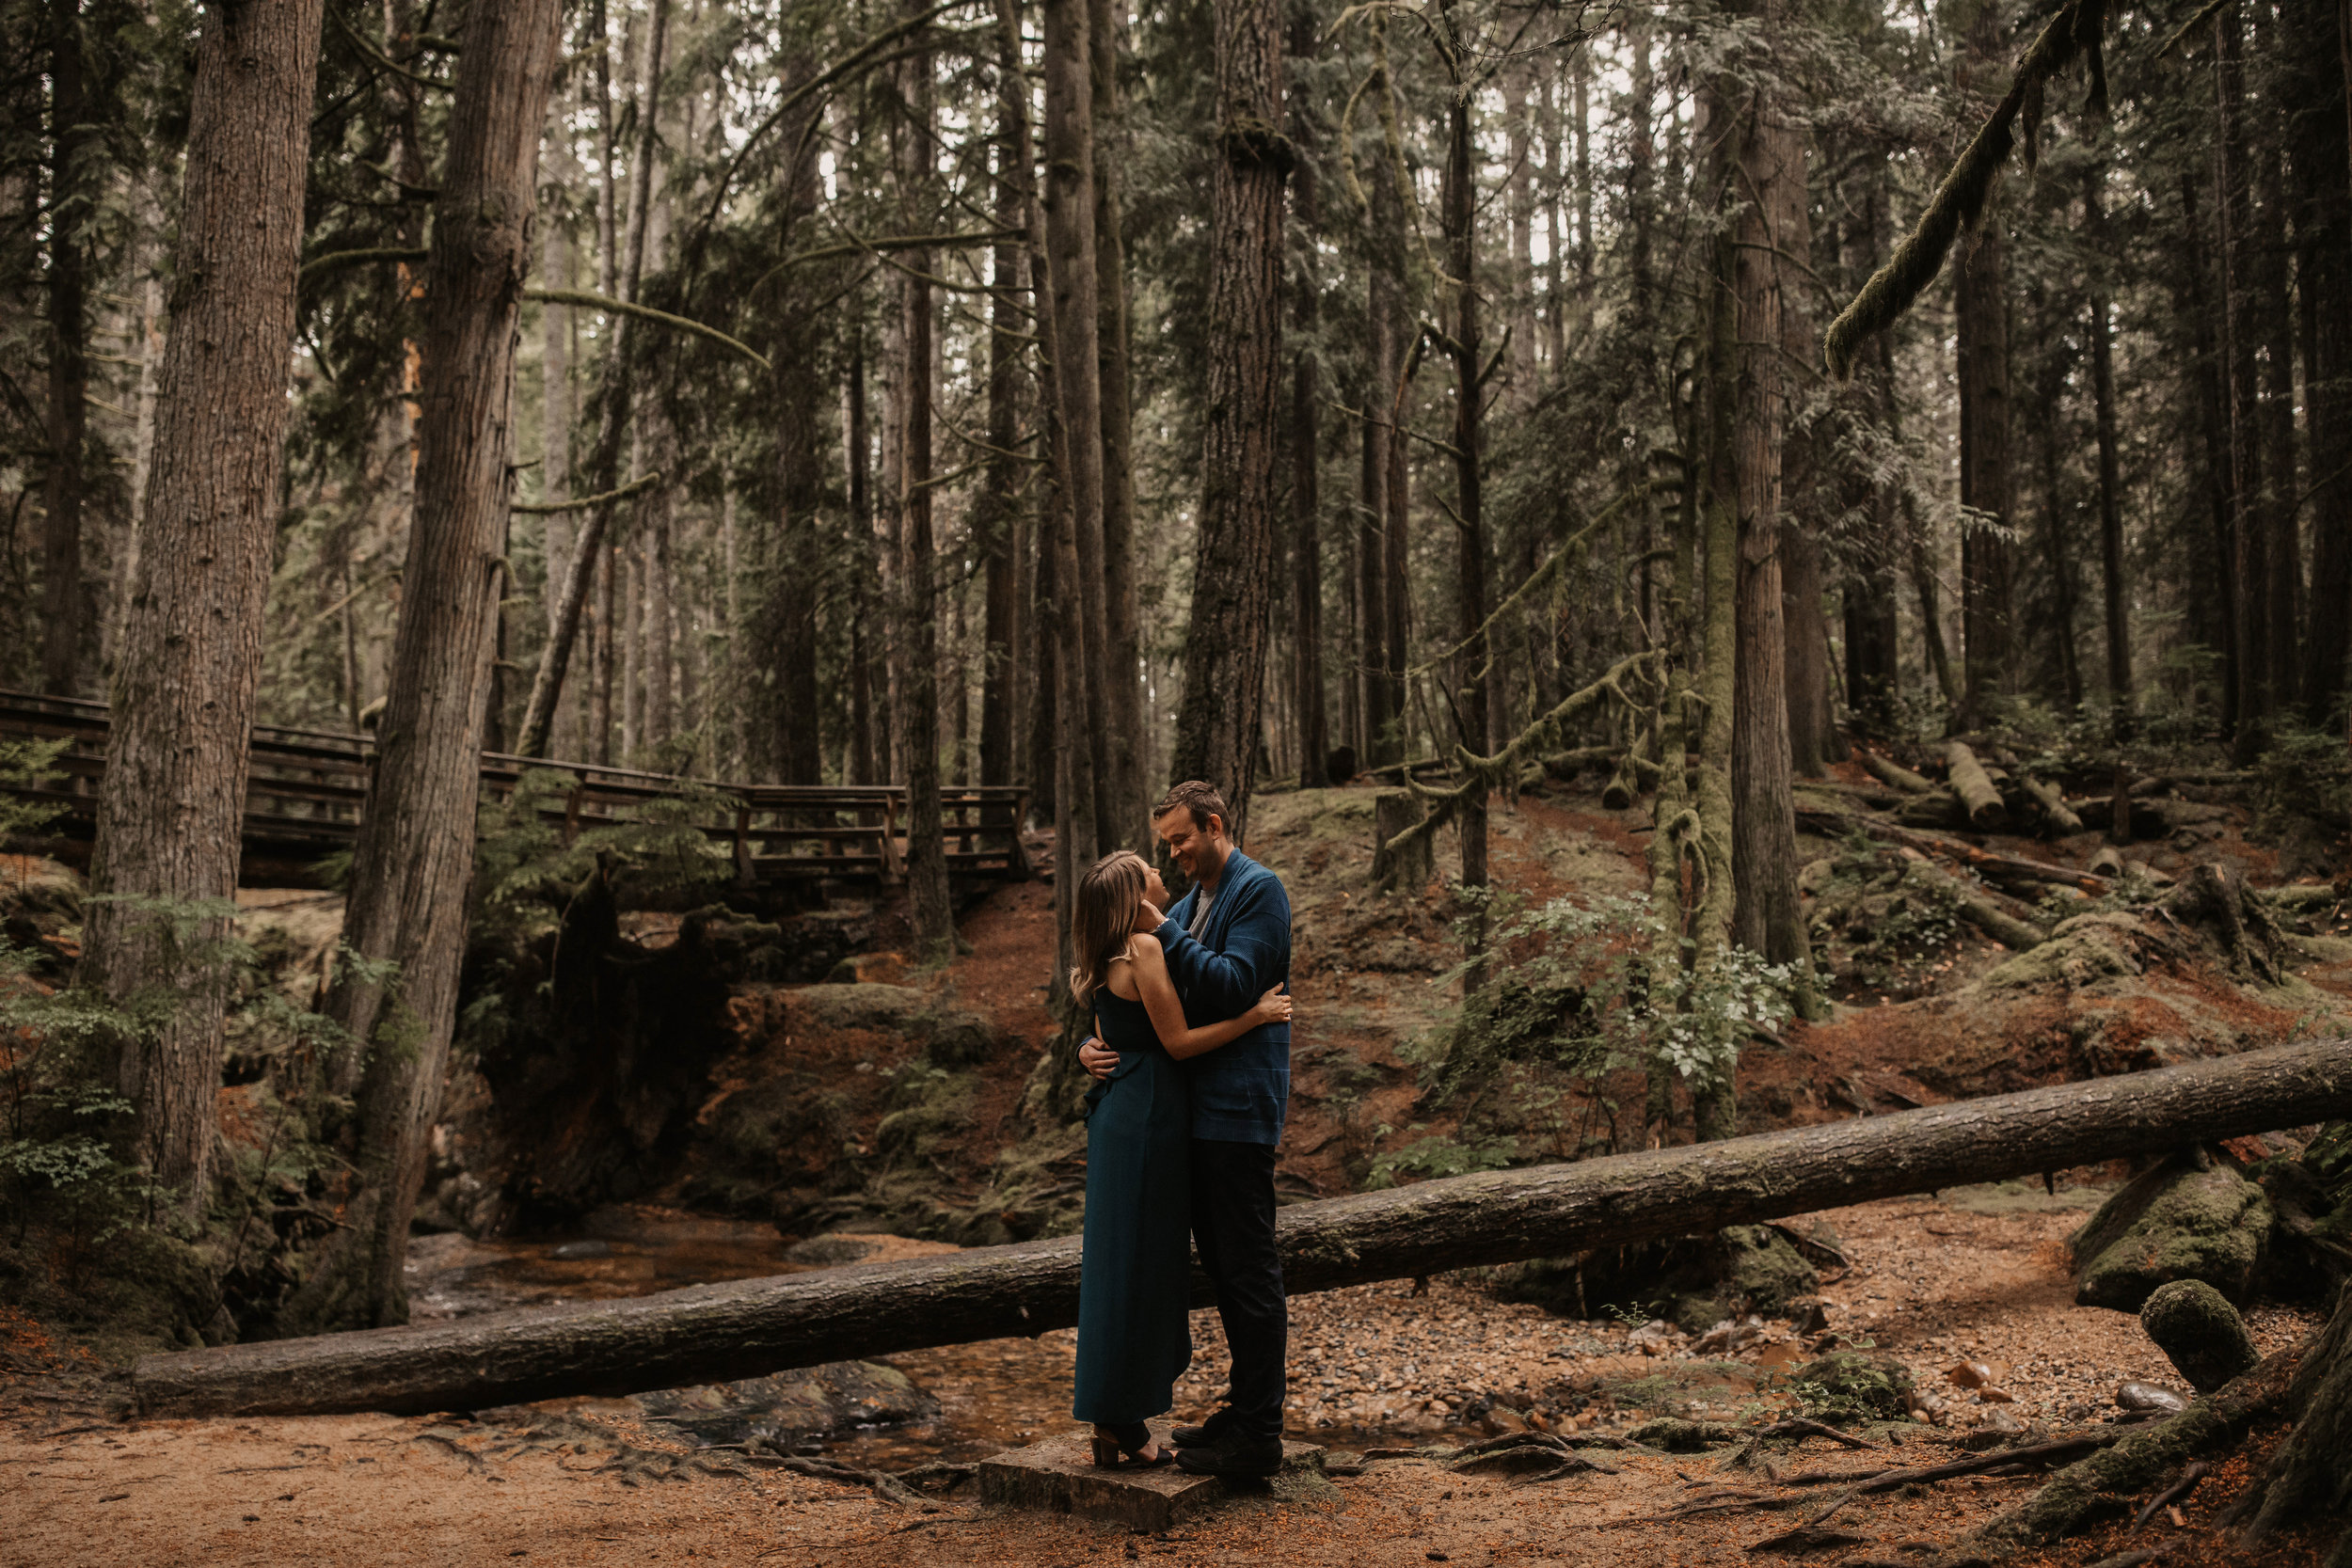 SUNSHINE COAST FOREST & BEACH ENGAGEMENT PHOTOS — Ashley & Antoine — JENNIFER PICARD PHOTOGRAPHY232.JPG